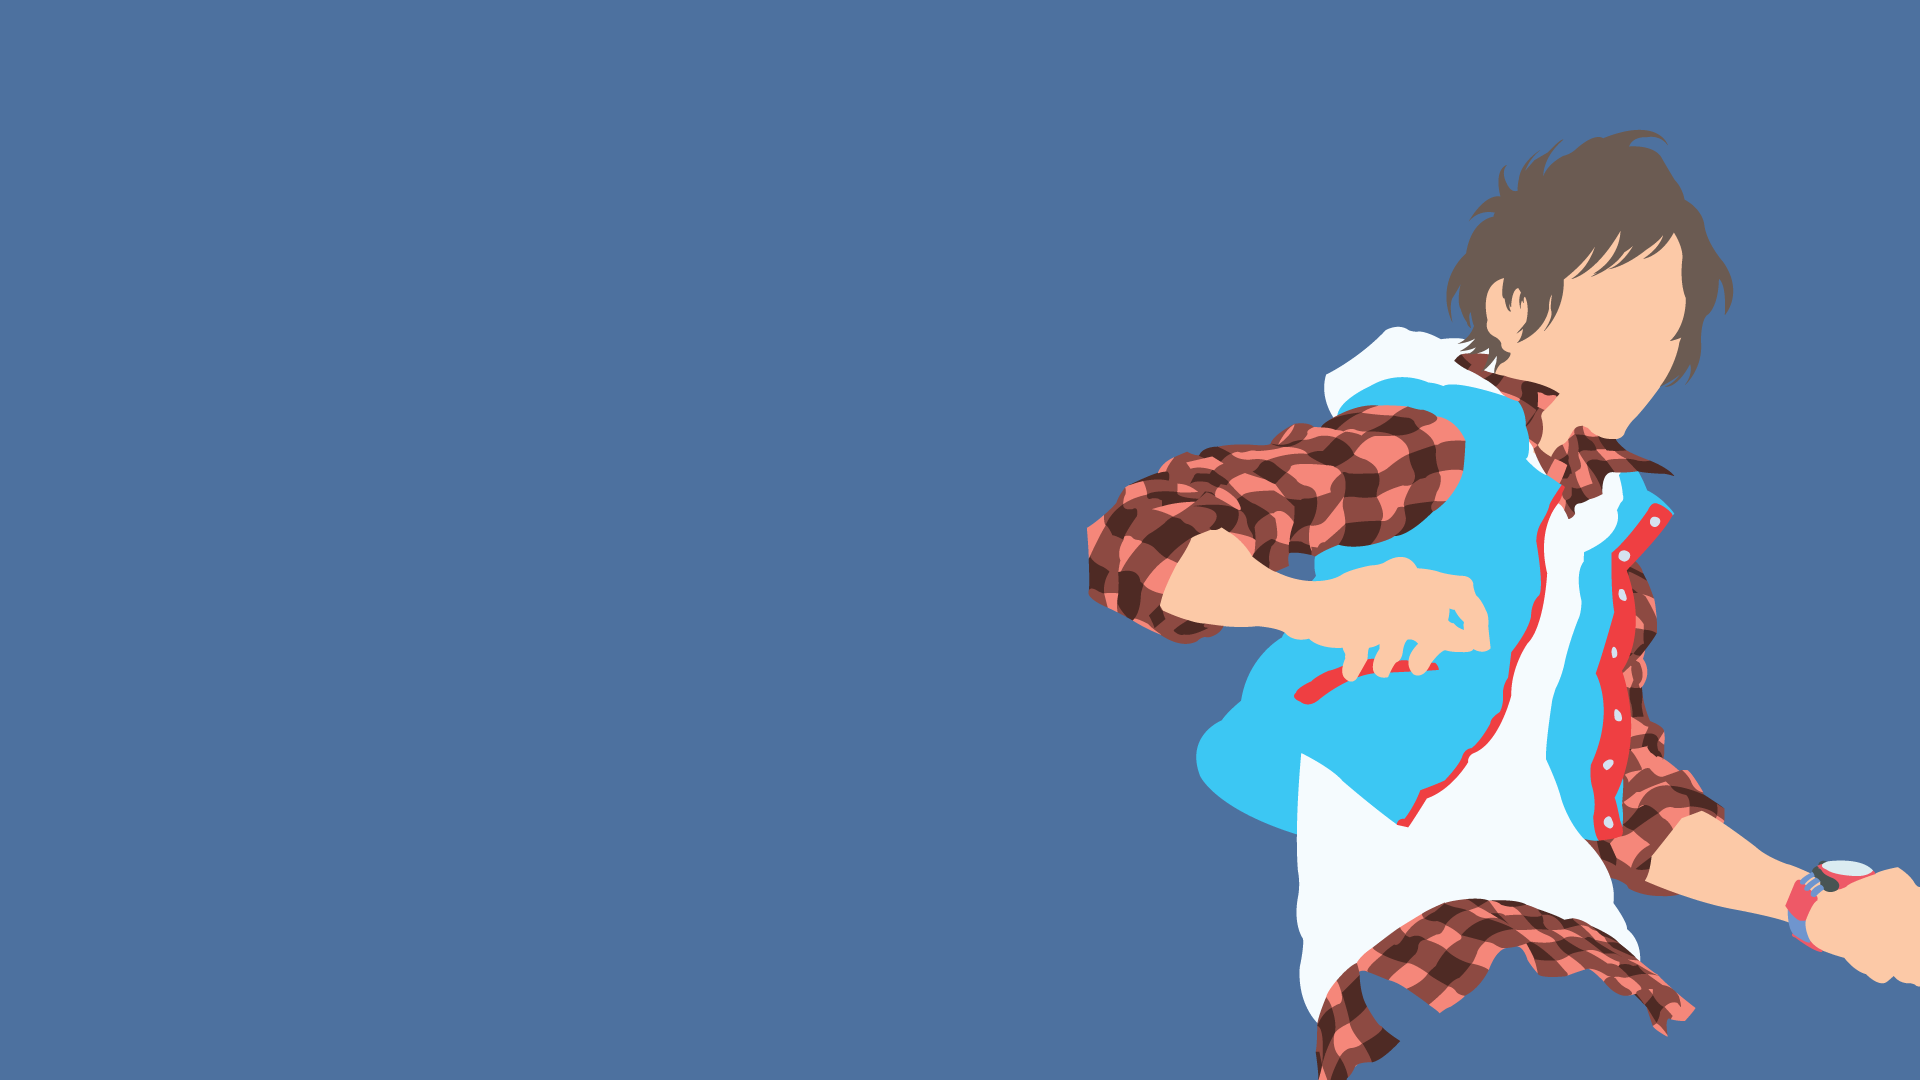 Junpei 9 Hours 9 Persons 9 Doors Wallpaper By Limecatmastr On